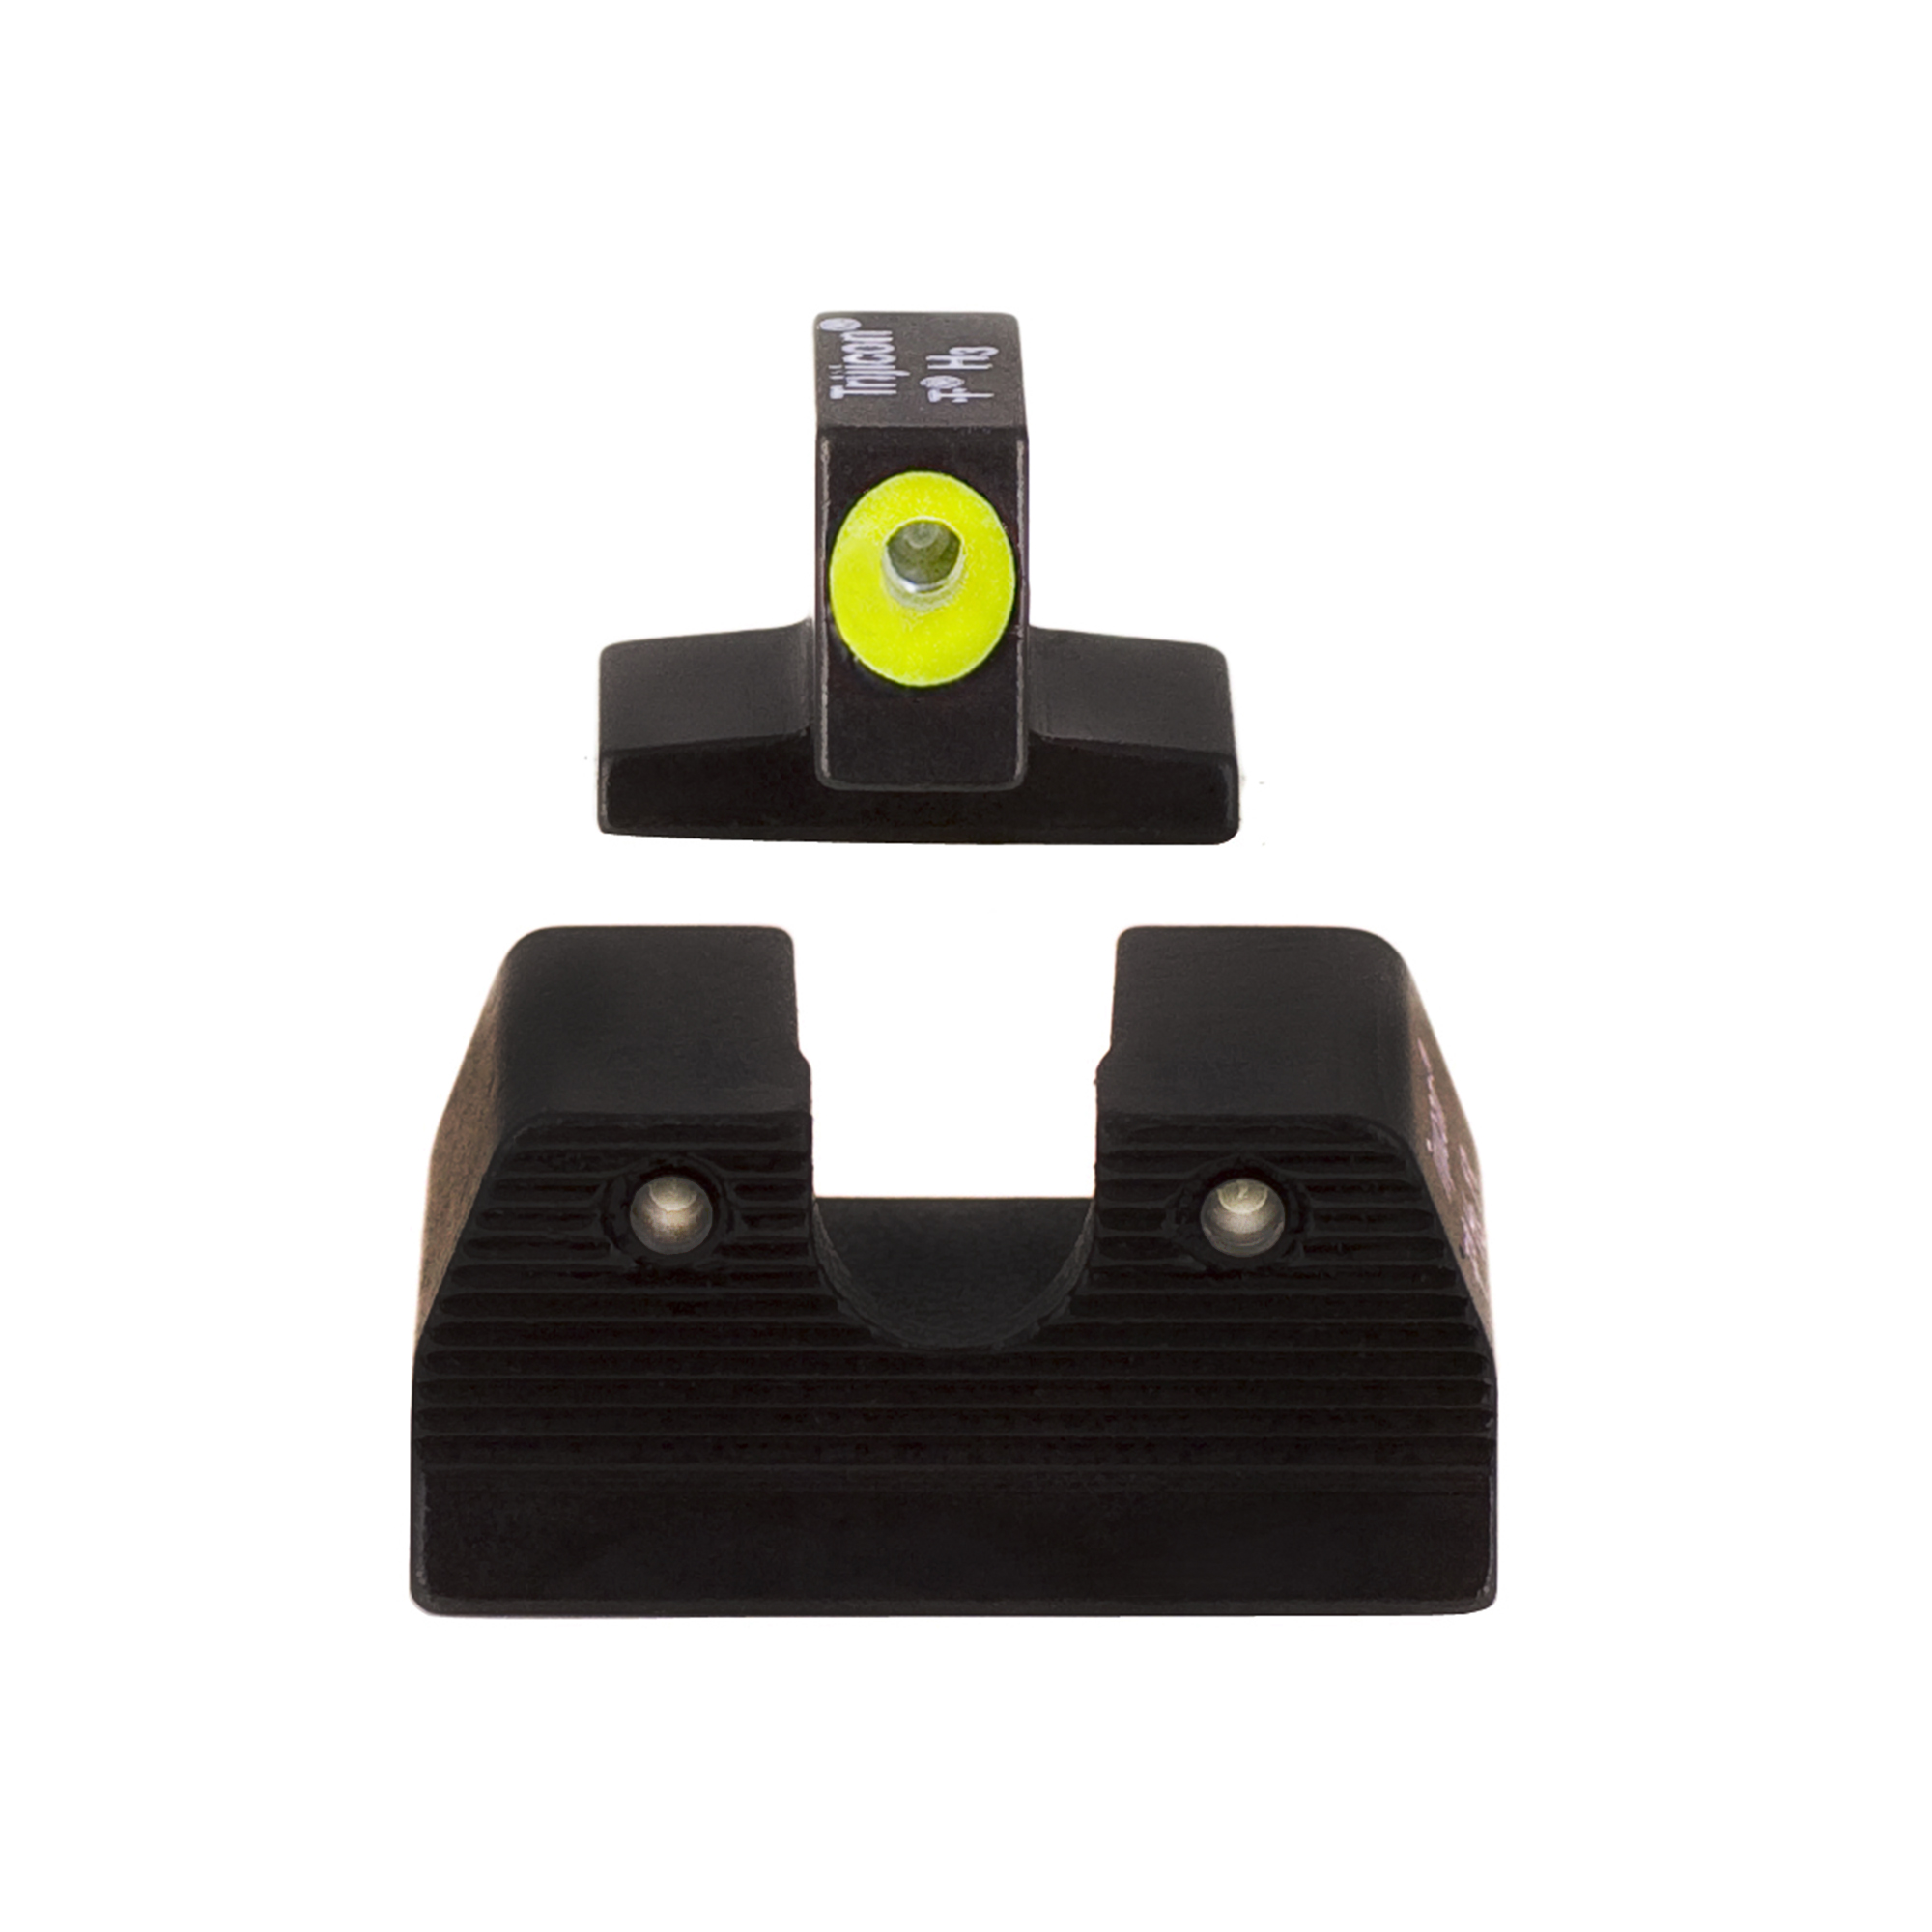 Trijicon FNH HD Night Sight Set FNS-40, FNX-40, and FNP-40 Models, Yellow Front Outline Lamp by Trijicon